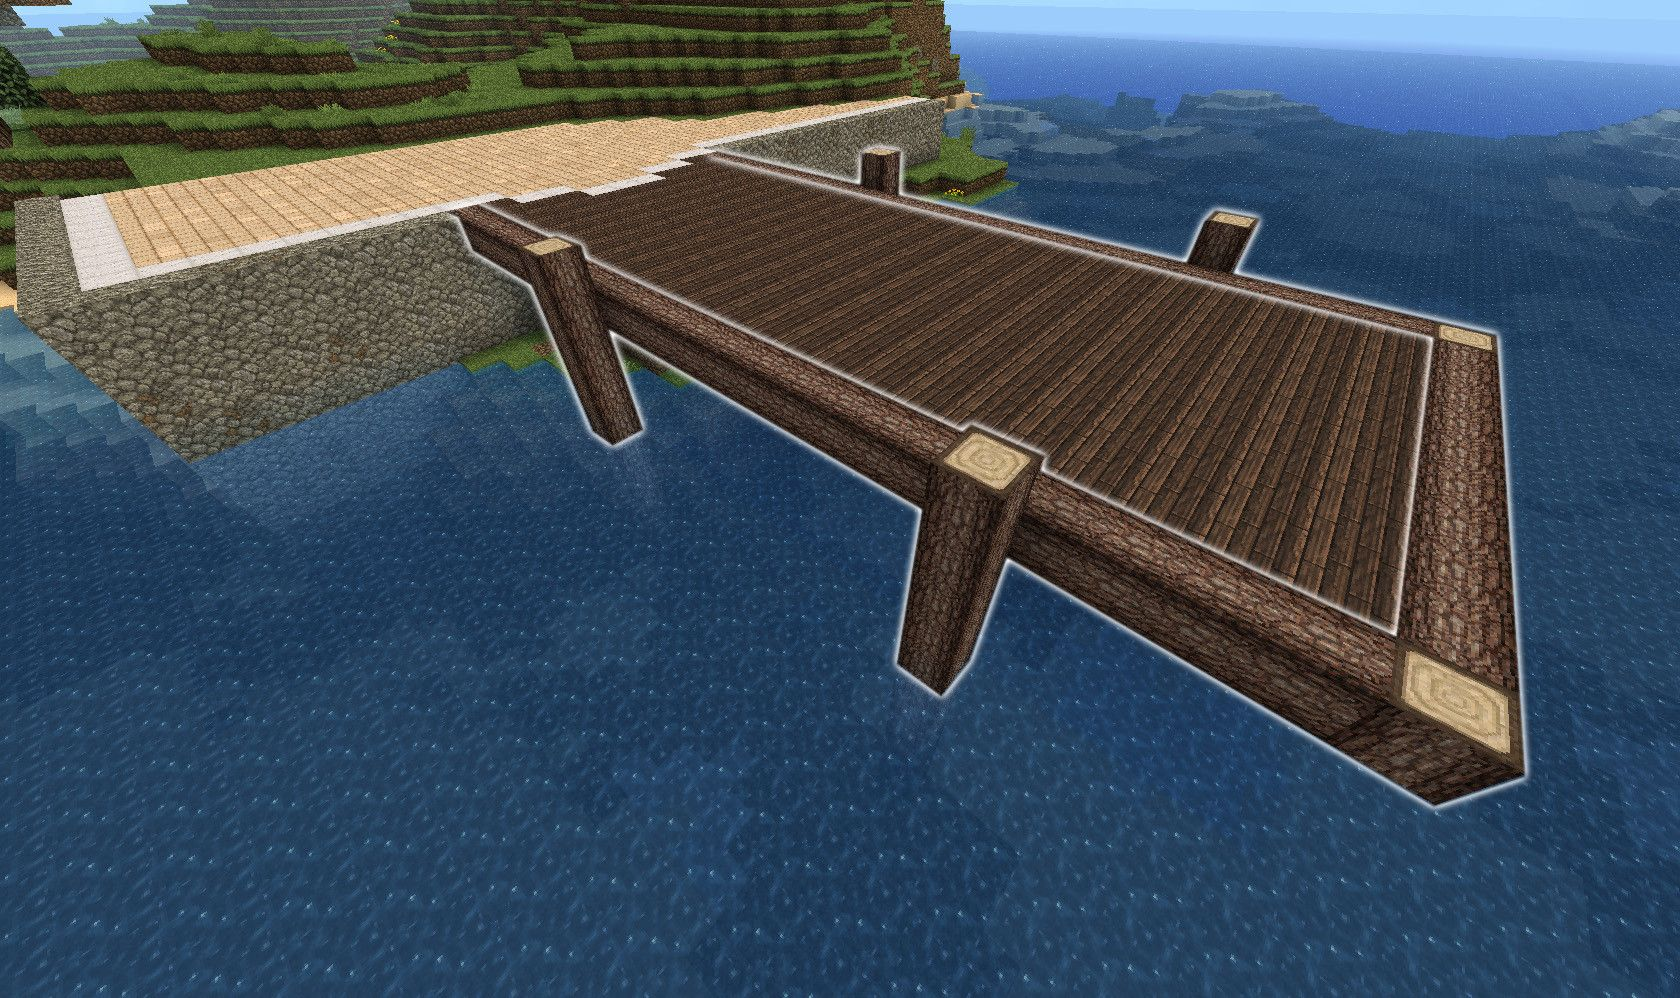 How To Build A Minecraft Dock Building A Dock Minecraft House Designs Minecraft Plans